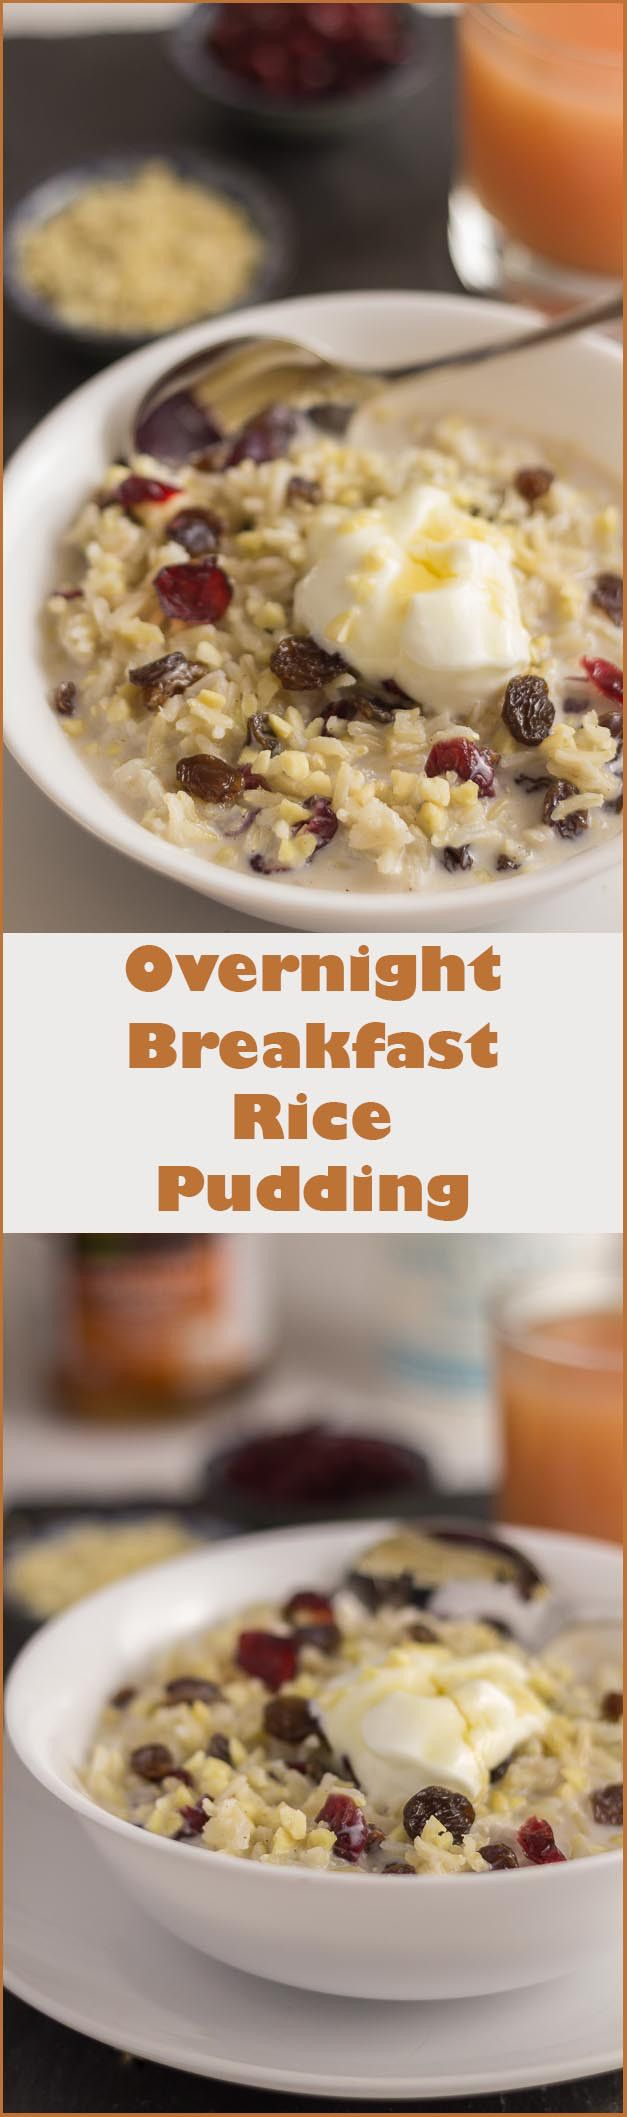 Overnight Breakfast Rice Pudding | Recipe